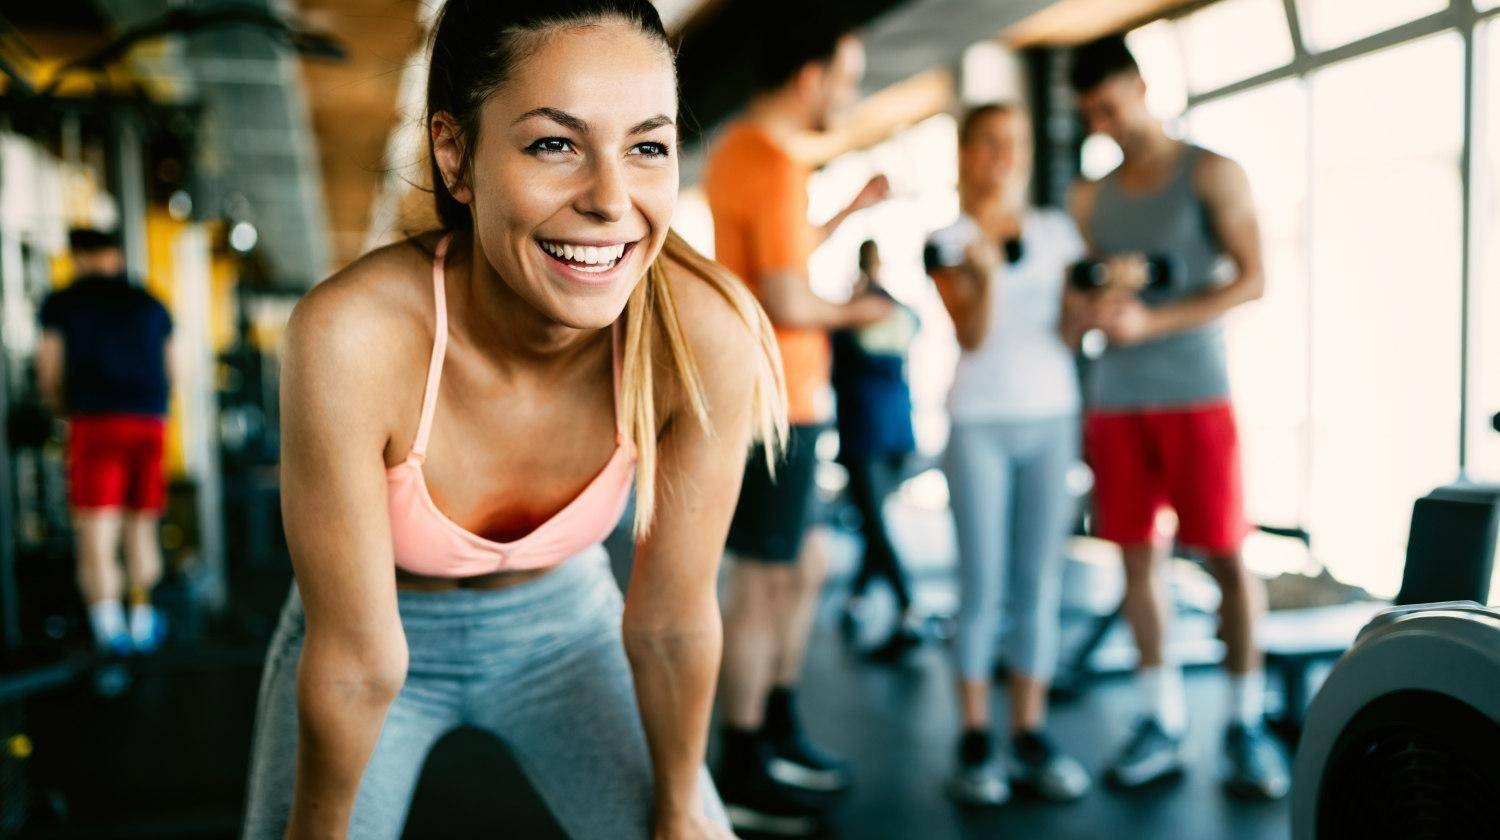 Featured | Close up image of attractive fit woman in gym | How Exercise Improves Cognitive Function and Overall Brain Health